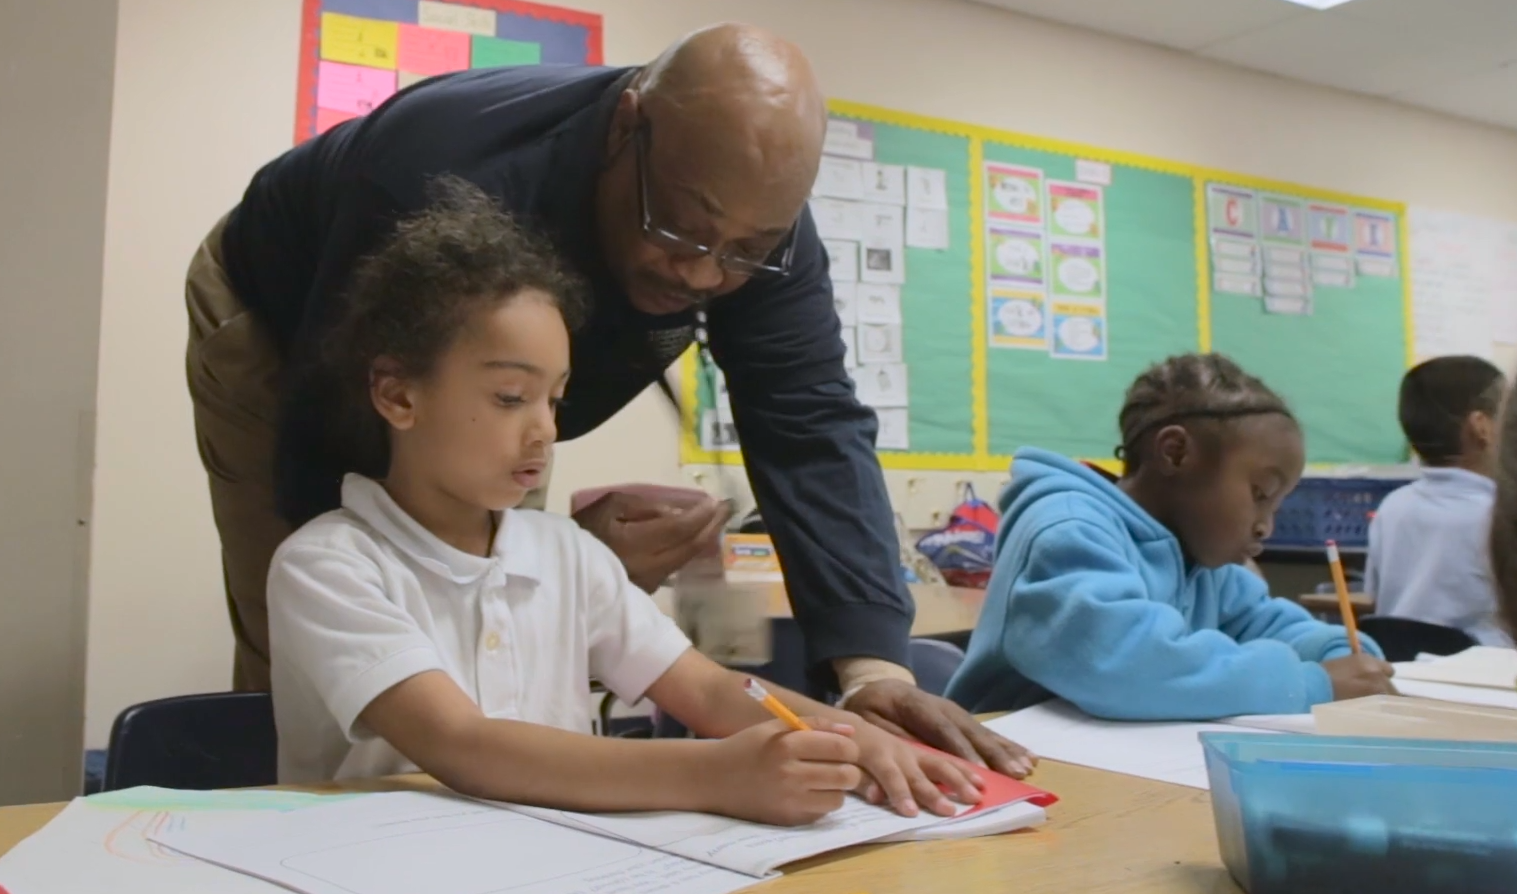 As Part Of Northern Arizona's Foster Grandparent Program, Fred Smith, A Former Police Captain, Volunteers And Helps Students In A Classroom In Glendale, Arizona. Photo Courtesy Northern Arizona Universities Foster Grandparent Program